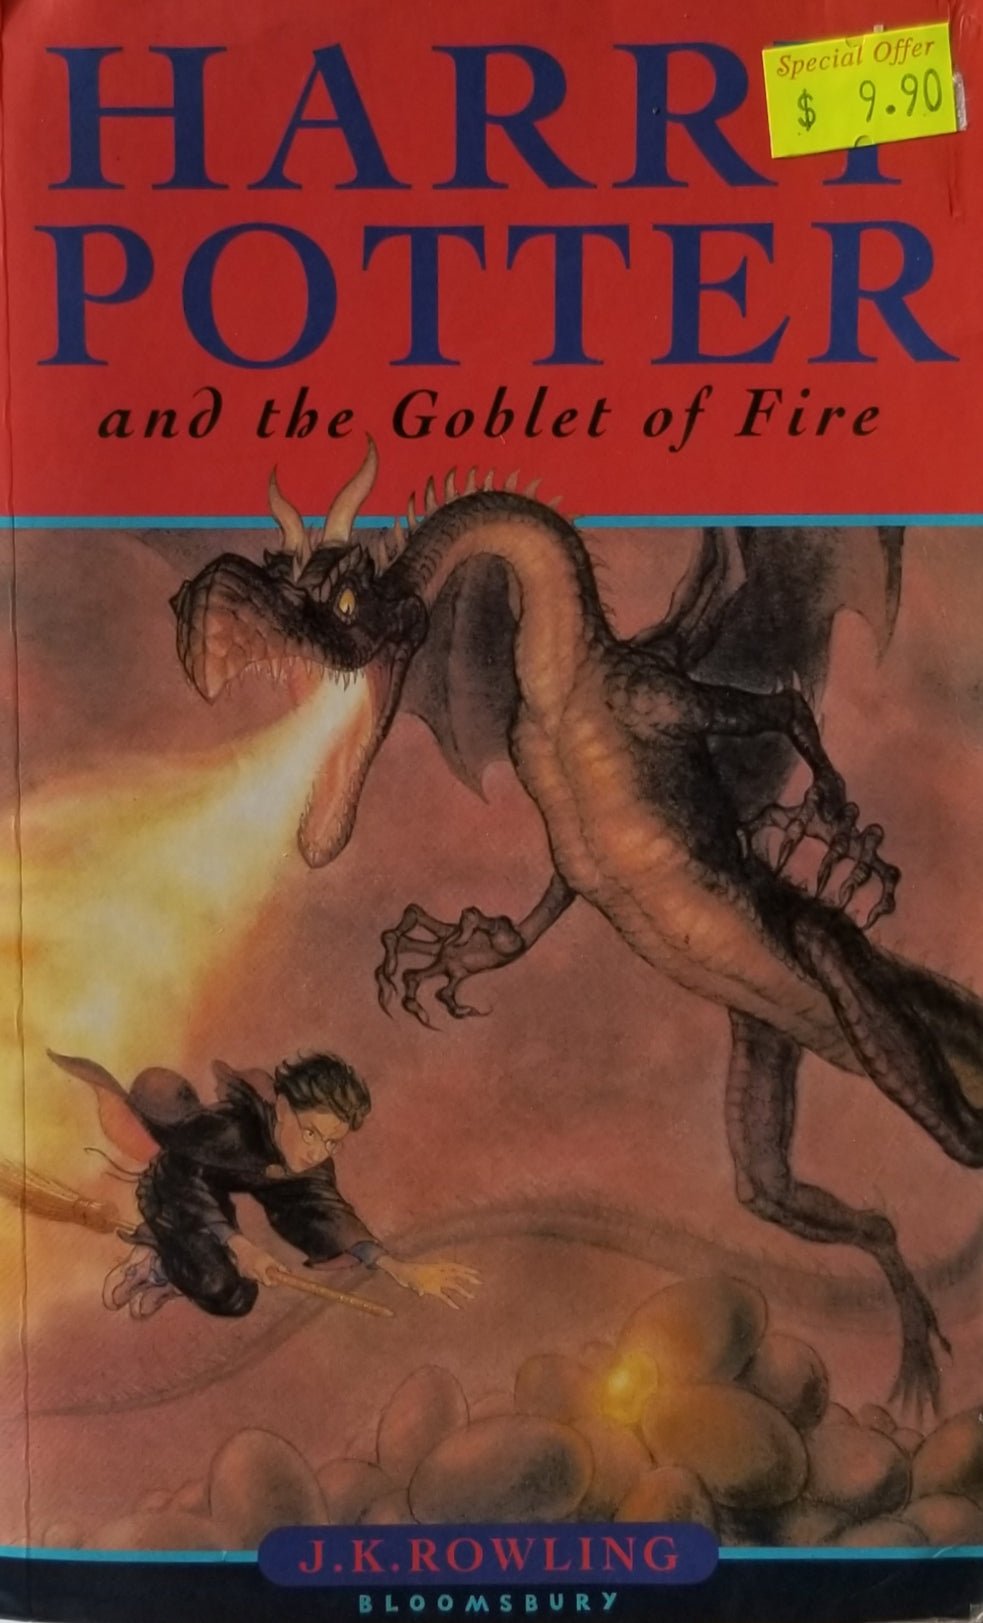 Harry Potter and the Goblet of Fire (Hardcover) - J. K. Rowling